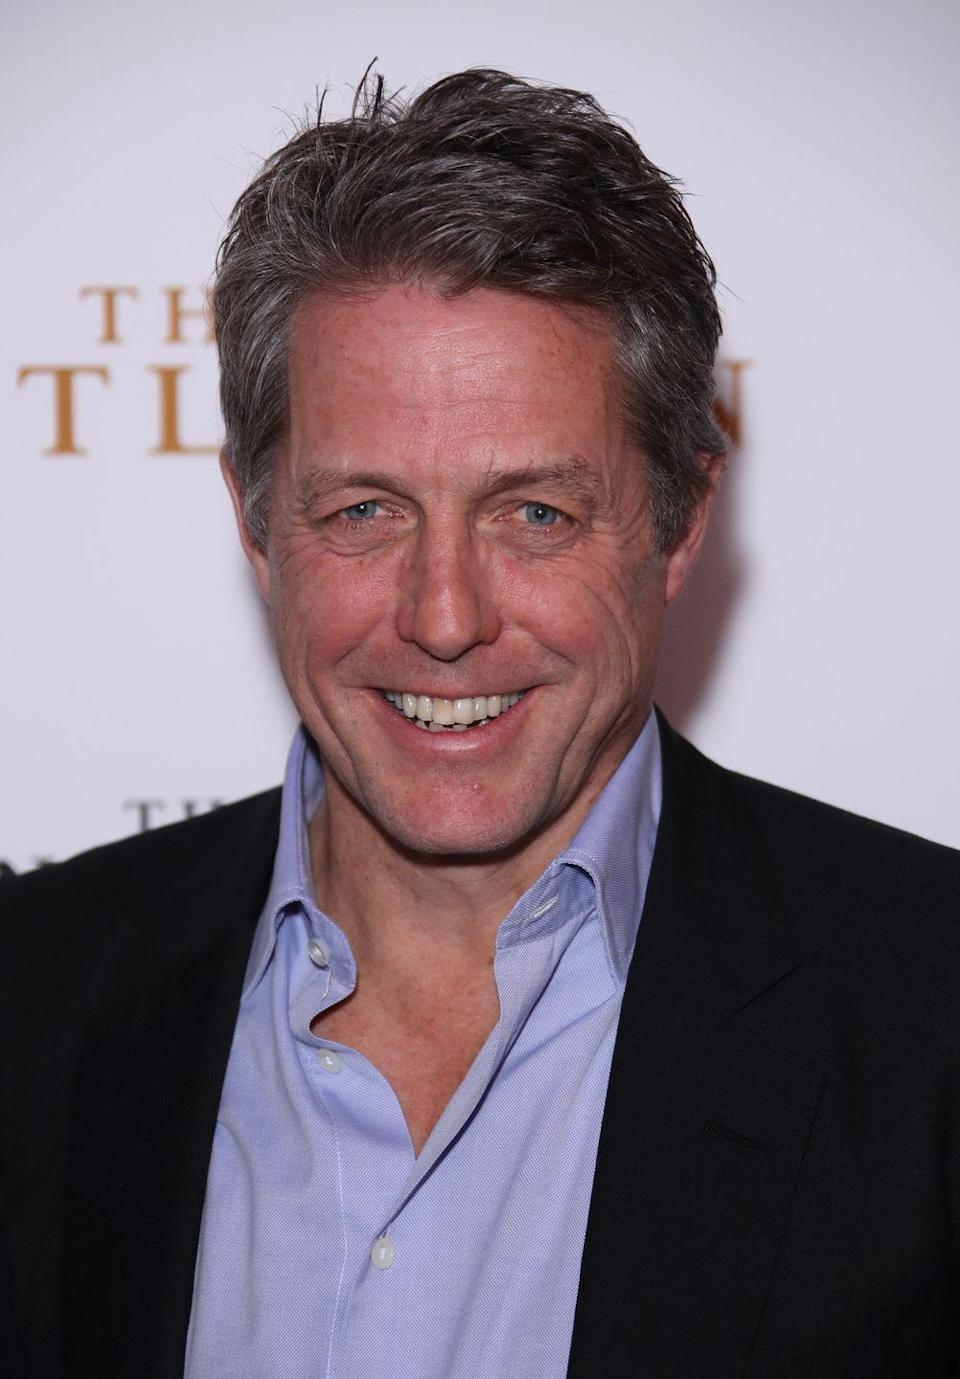 "<p>On <a href=""https://www.digitalspy.com/showbiz/a16571/hugh-grant-speaks-of-julias-big-mouth/"" rel=""nofollow noopener"" target=""_blank"" data-ylk=""slk:The Oprah Winfrey Show"" class=""link rapid-noclick-resp""><em>The</em> <em>Oprah Winfrey </em><em>Show</em></a>, Hugh Grant said some not-so-nice things about his former <em>Notting Hill</em> costar. When asked about Julia Roberts he said, ""Very big-mouthed! Literally, physically, she has a very big mouth. When I was kissing her I was aware of a faint echo.""</p>"